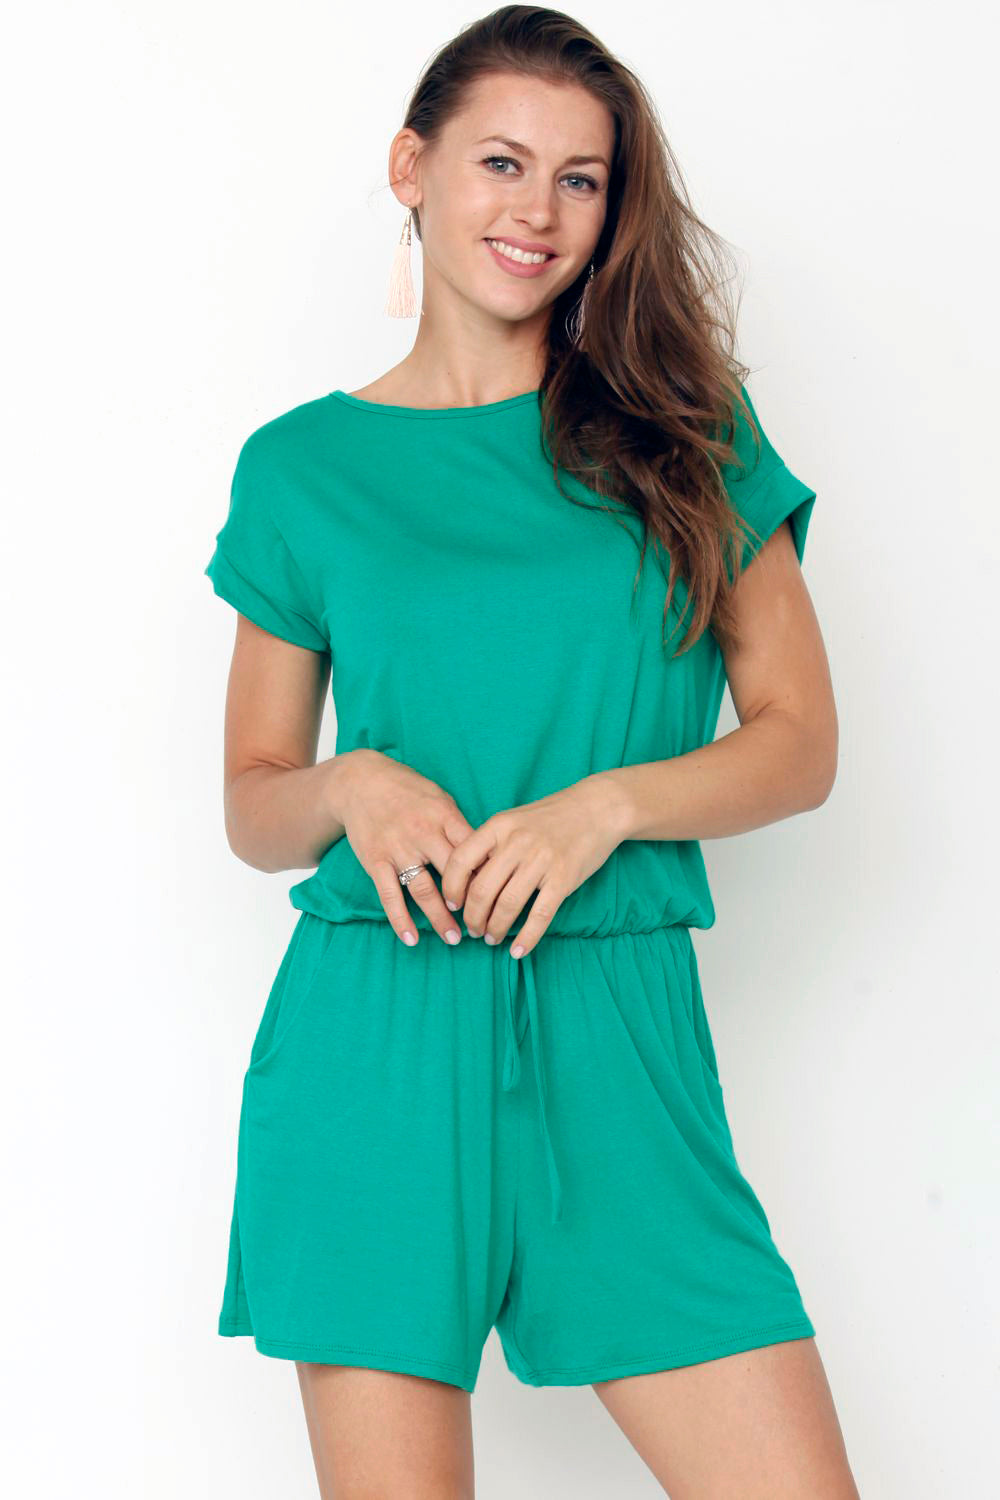 Solid Green Short Sleeve Romper